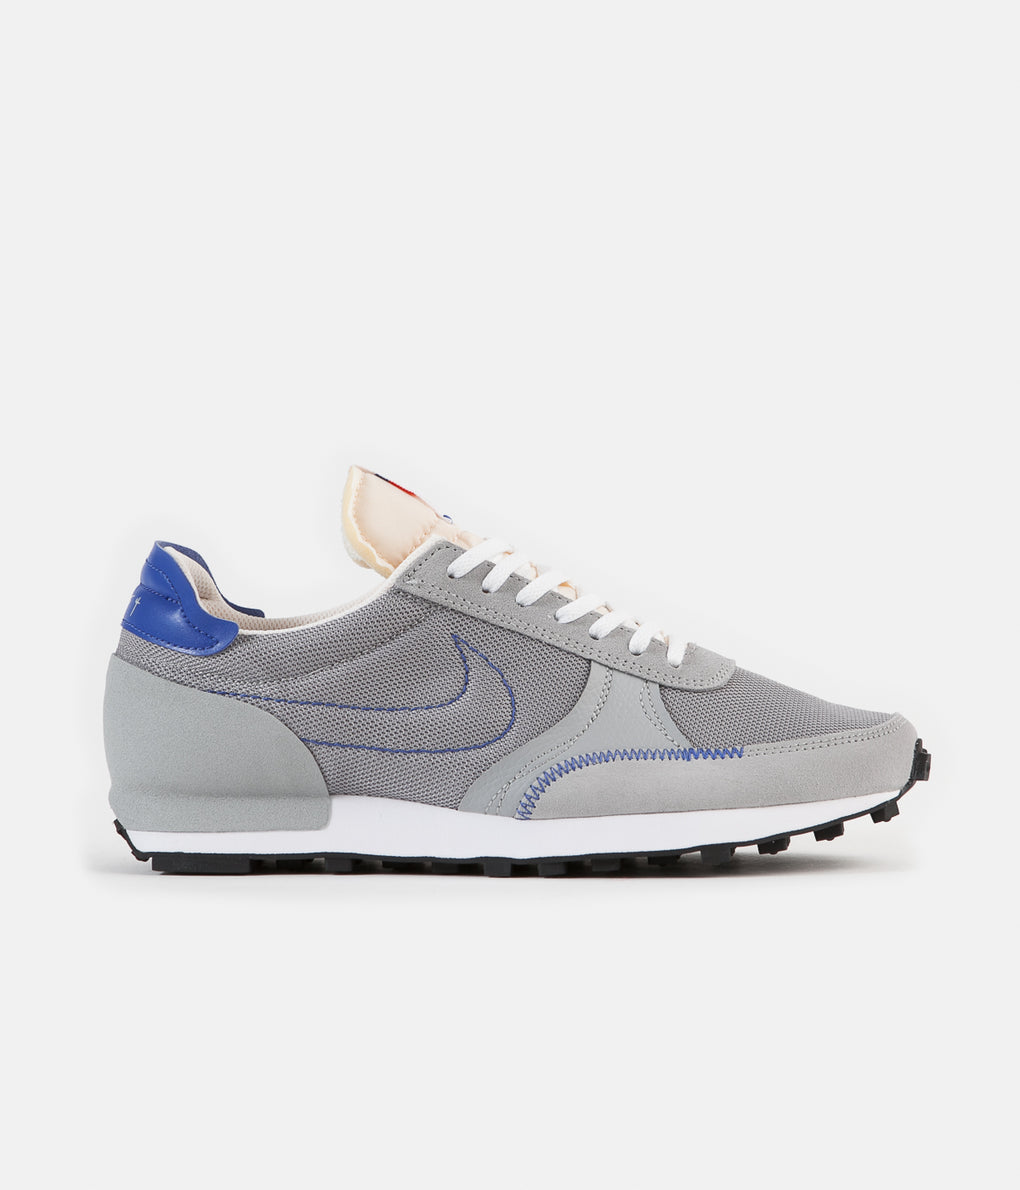 Nike Daybreak Type Shoes - Light Smoke Grey / Game Royal - Sail - White